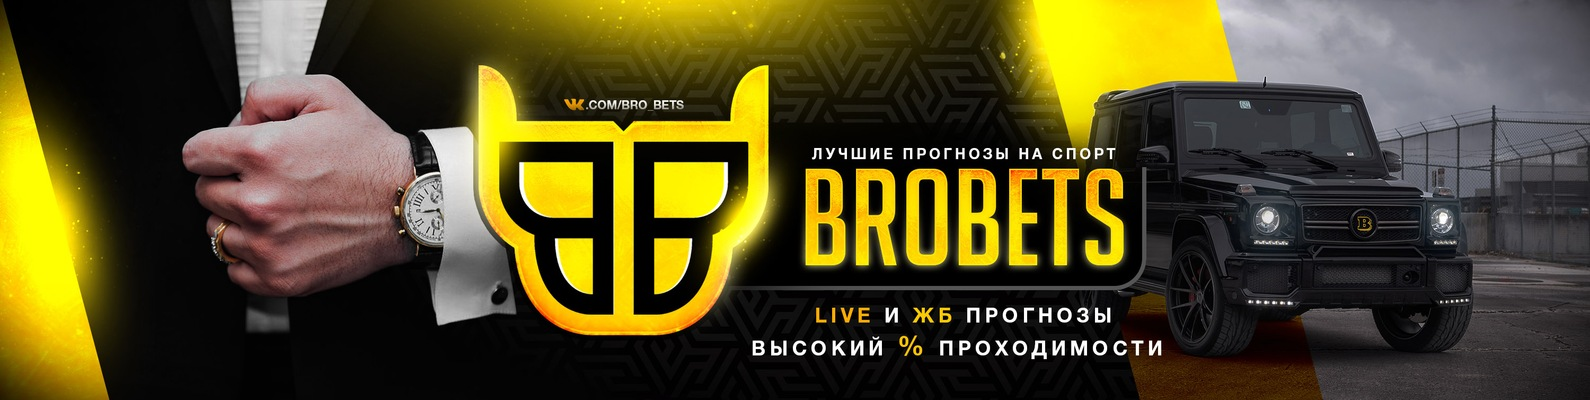 Ставки на спорт brobets [PUNIQRANDLINE-(au-dating-names.txt) 26